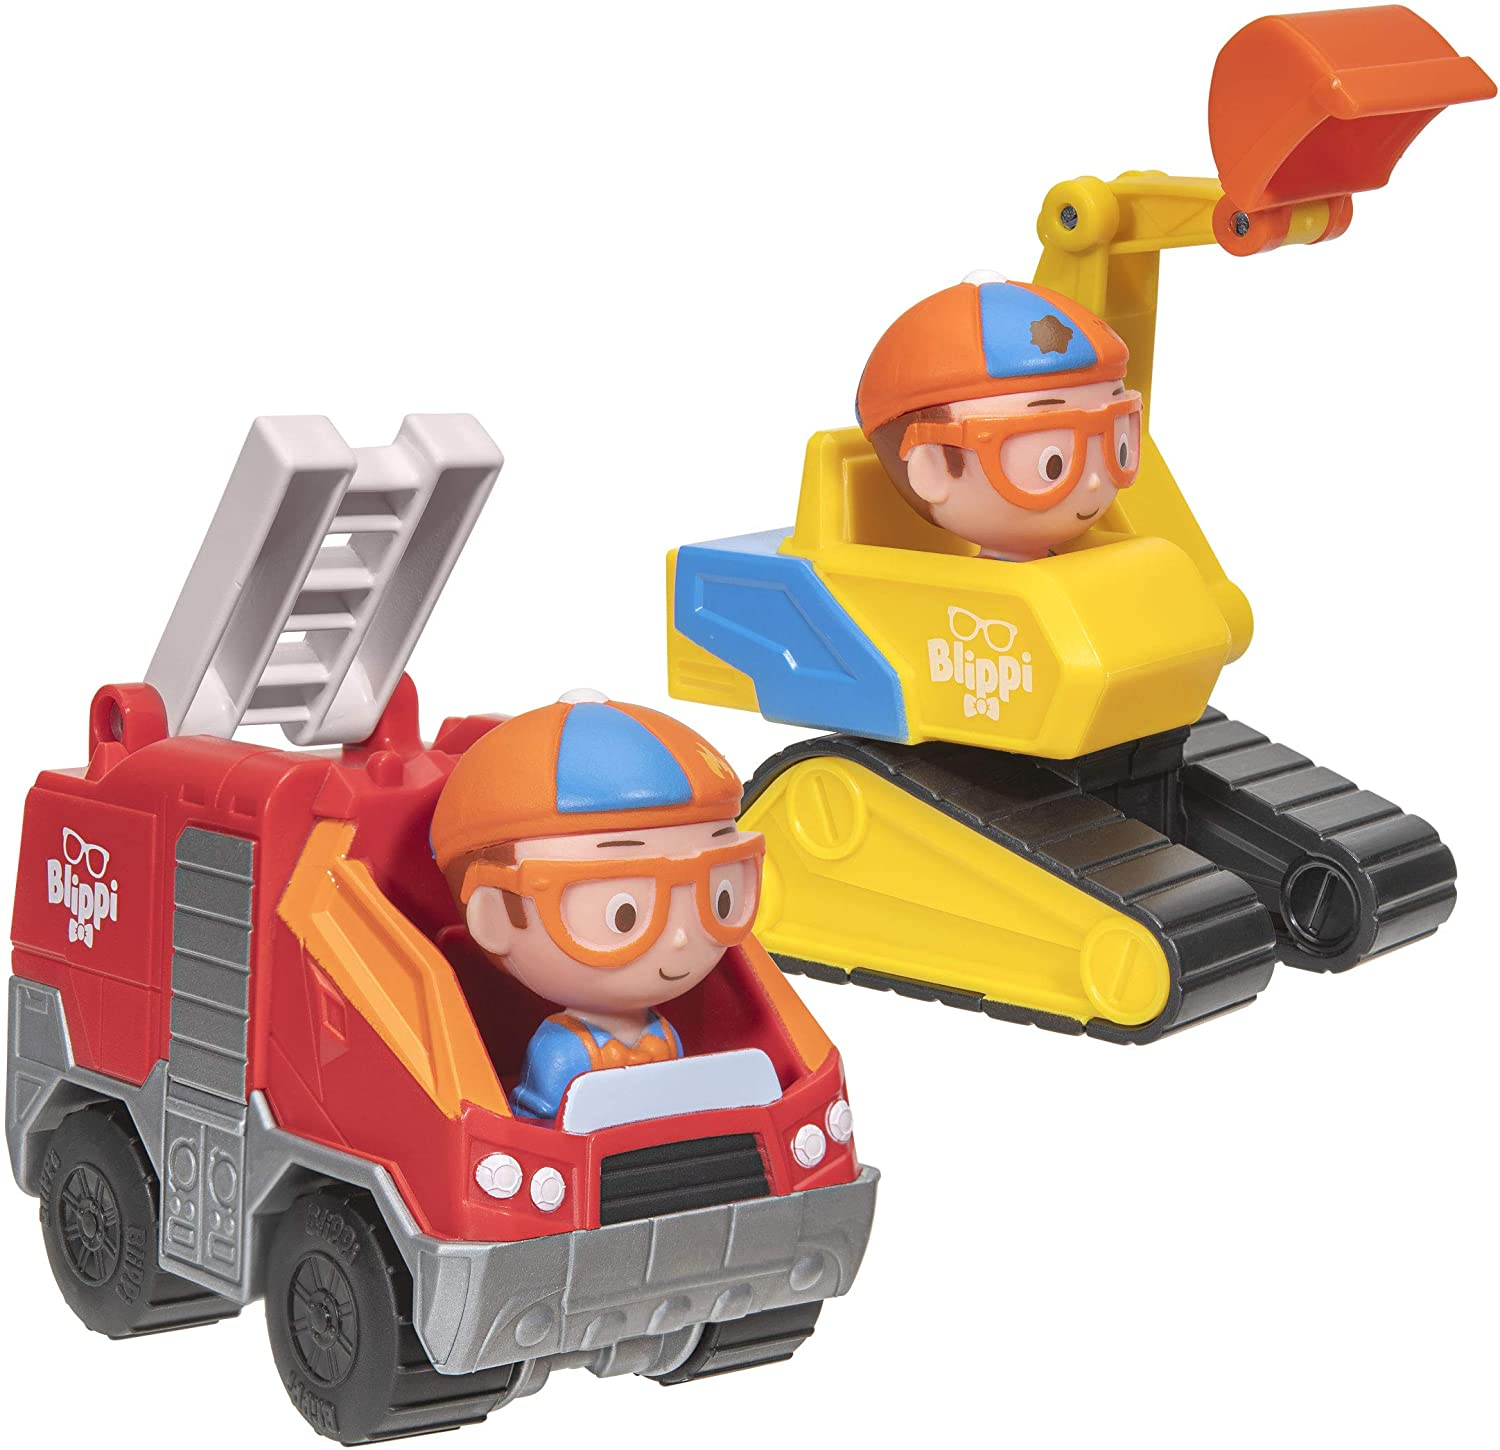 Blippi Mini Vehicles, Including Excavator and Fire Truck, Each with a Character Toy Figure Seated Inside - Zoom Around The Room for Free-Wheeling Fun - Perfect for Young Children: Toys & Games